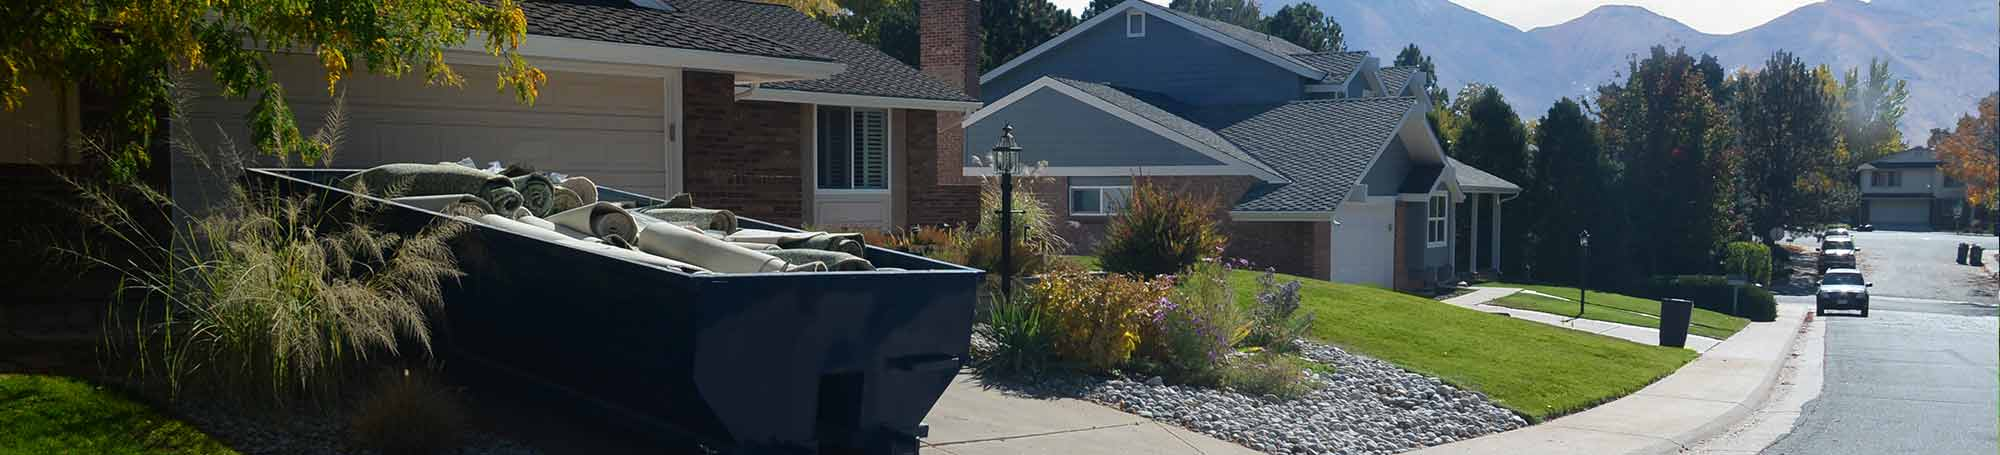 Roll Off Dumpster in Residential Driveway With Mountains in the Background.